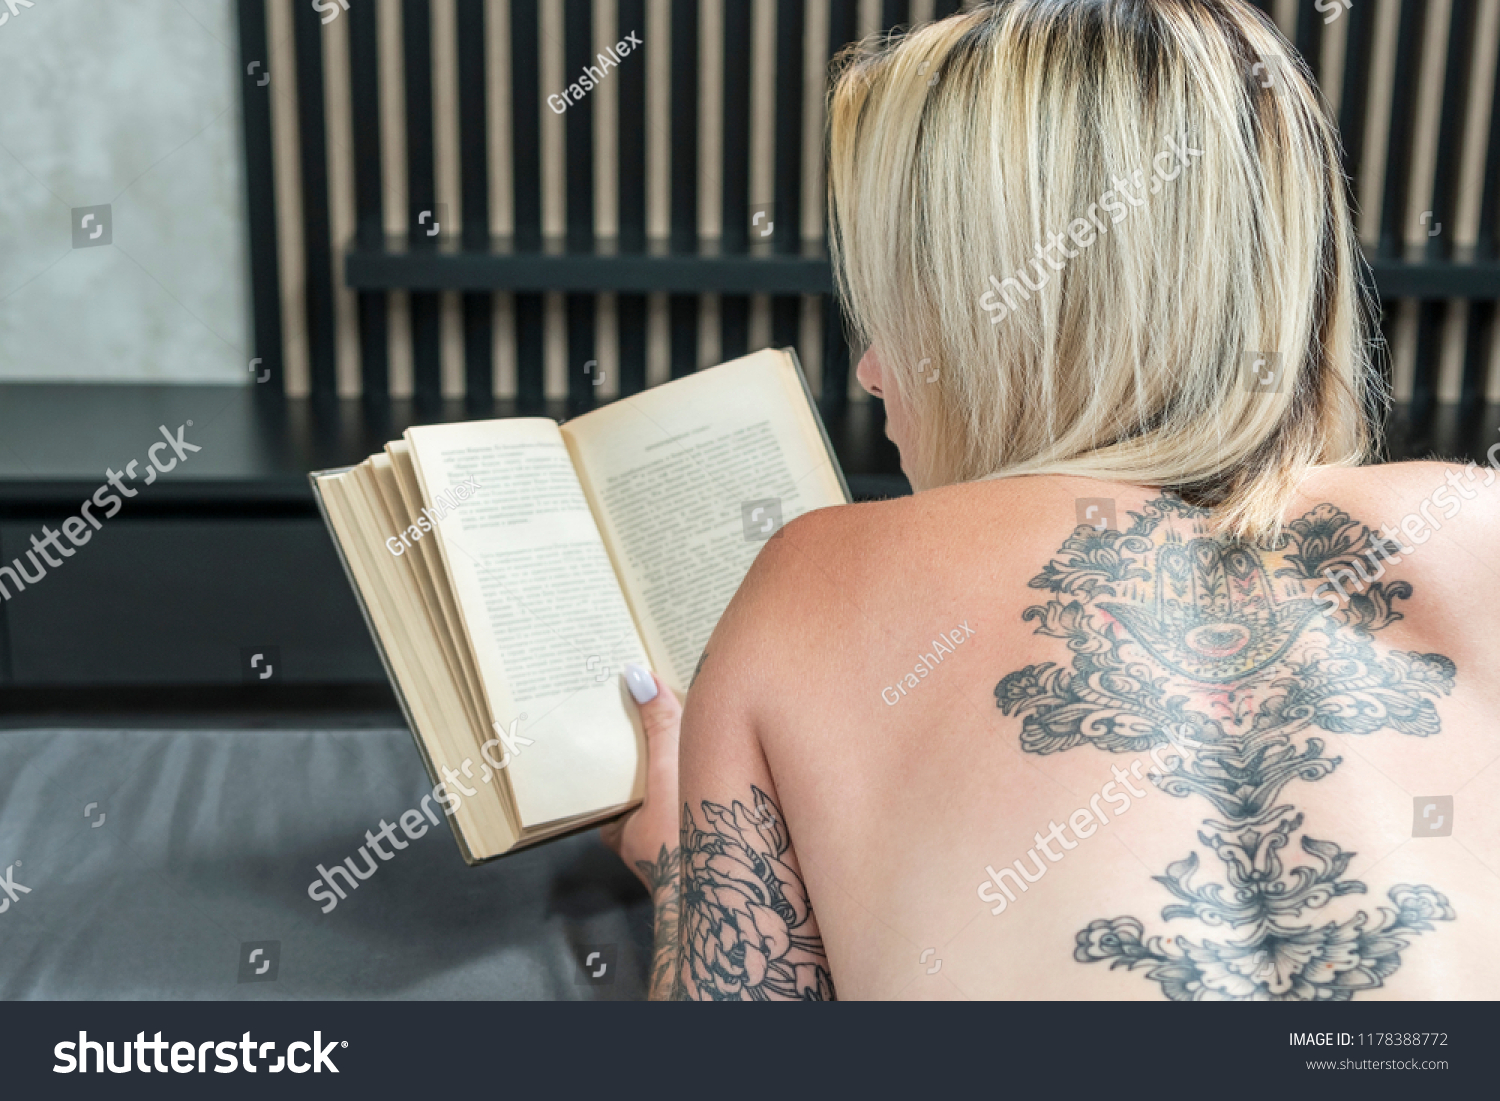 Naked woman with tattoos, reading a book, lying in bed, view from behind